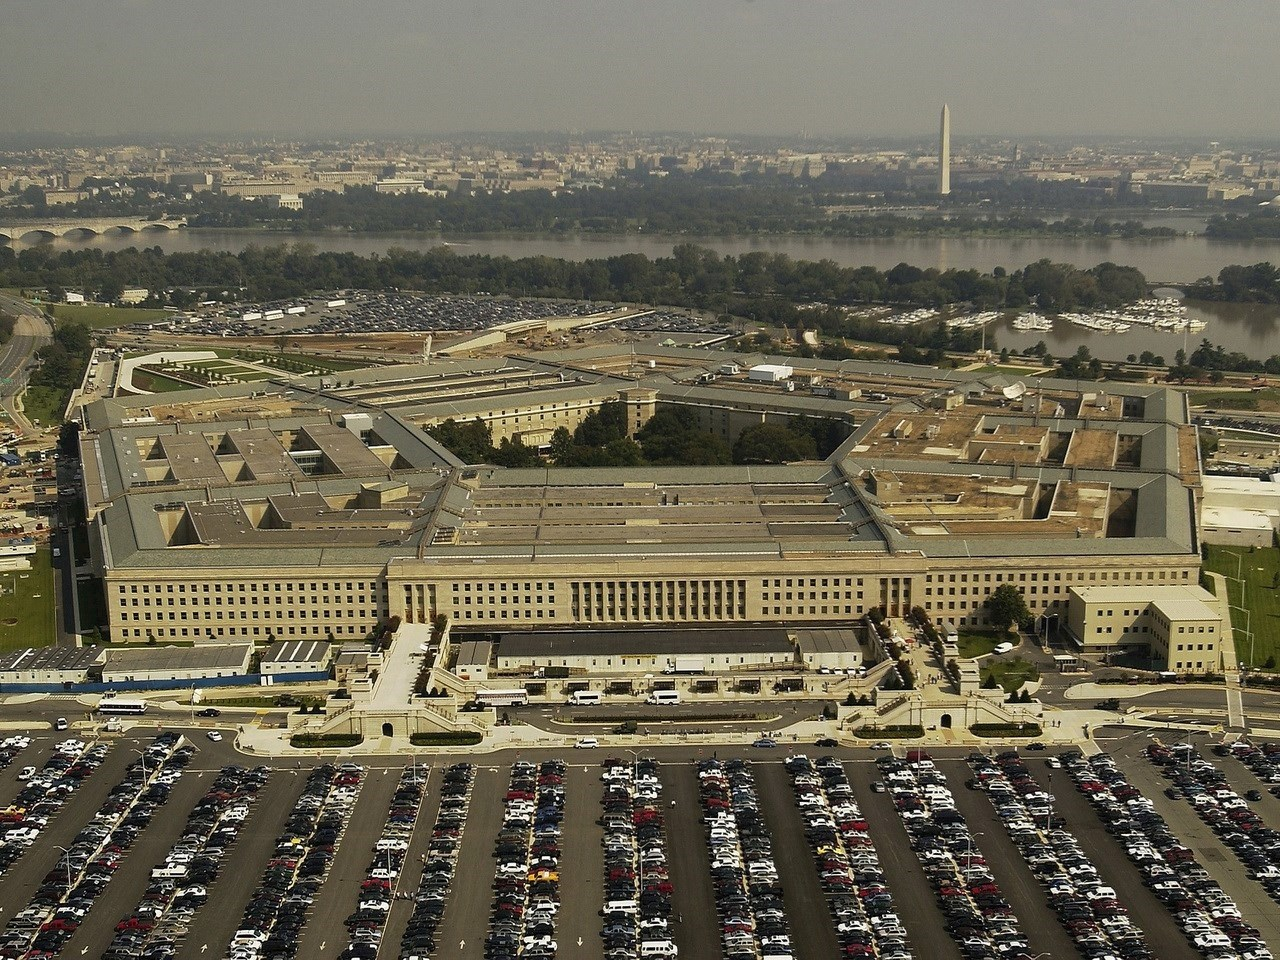 Department of Defense headquarters